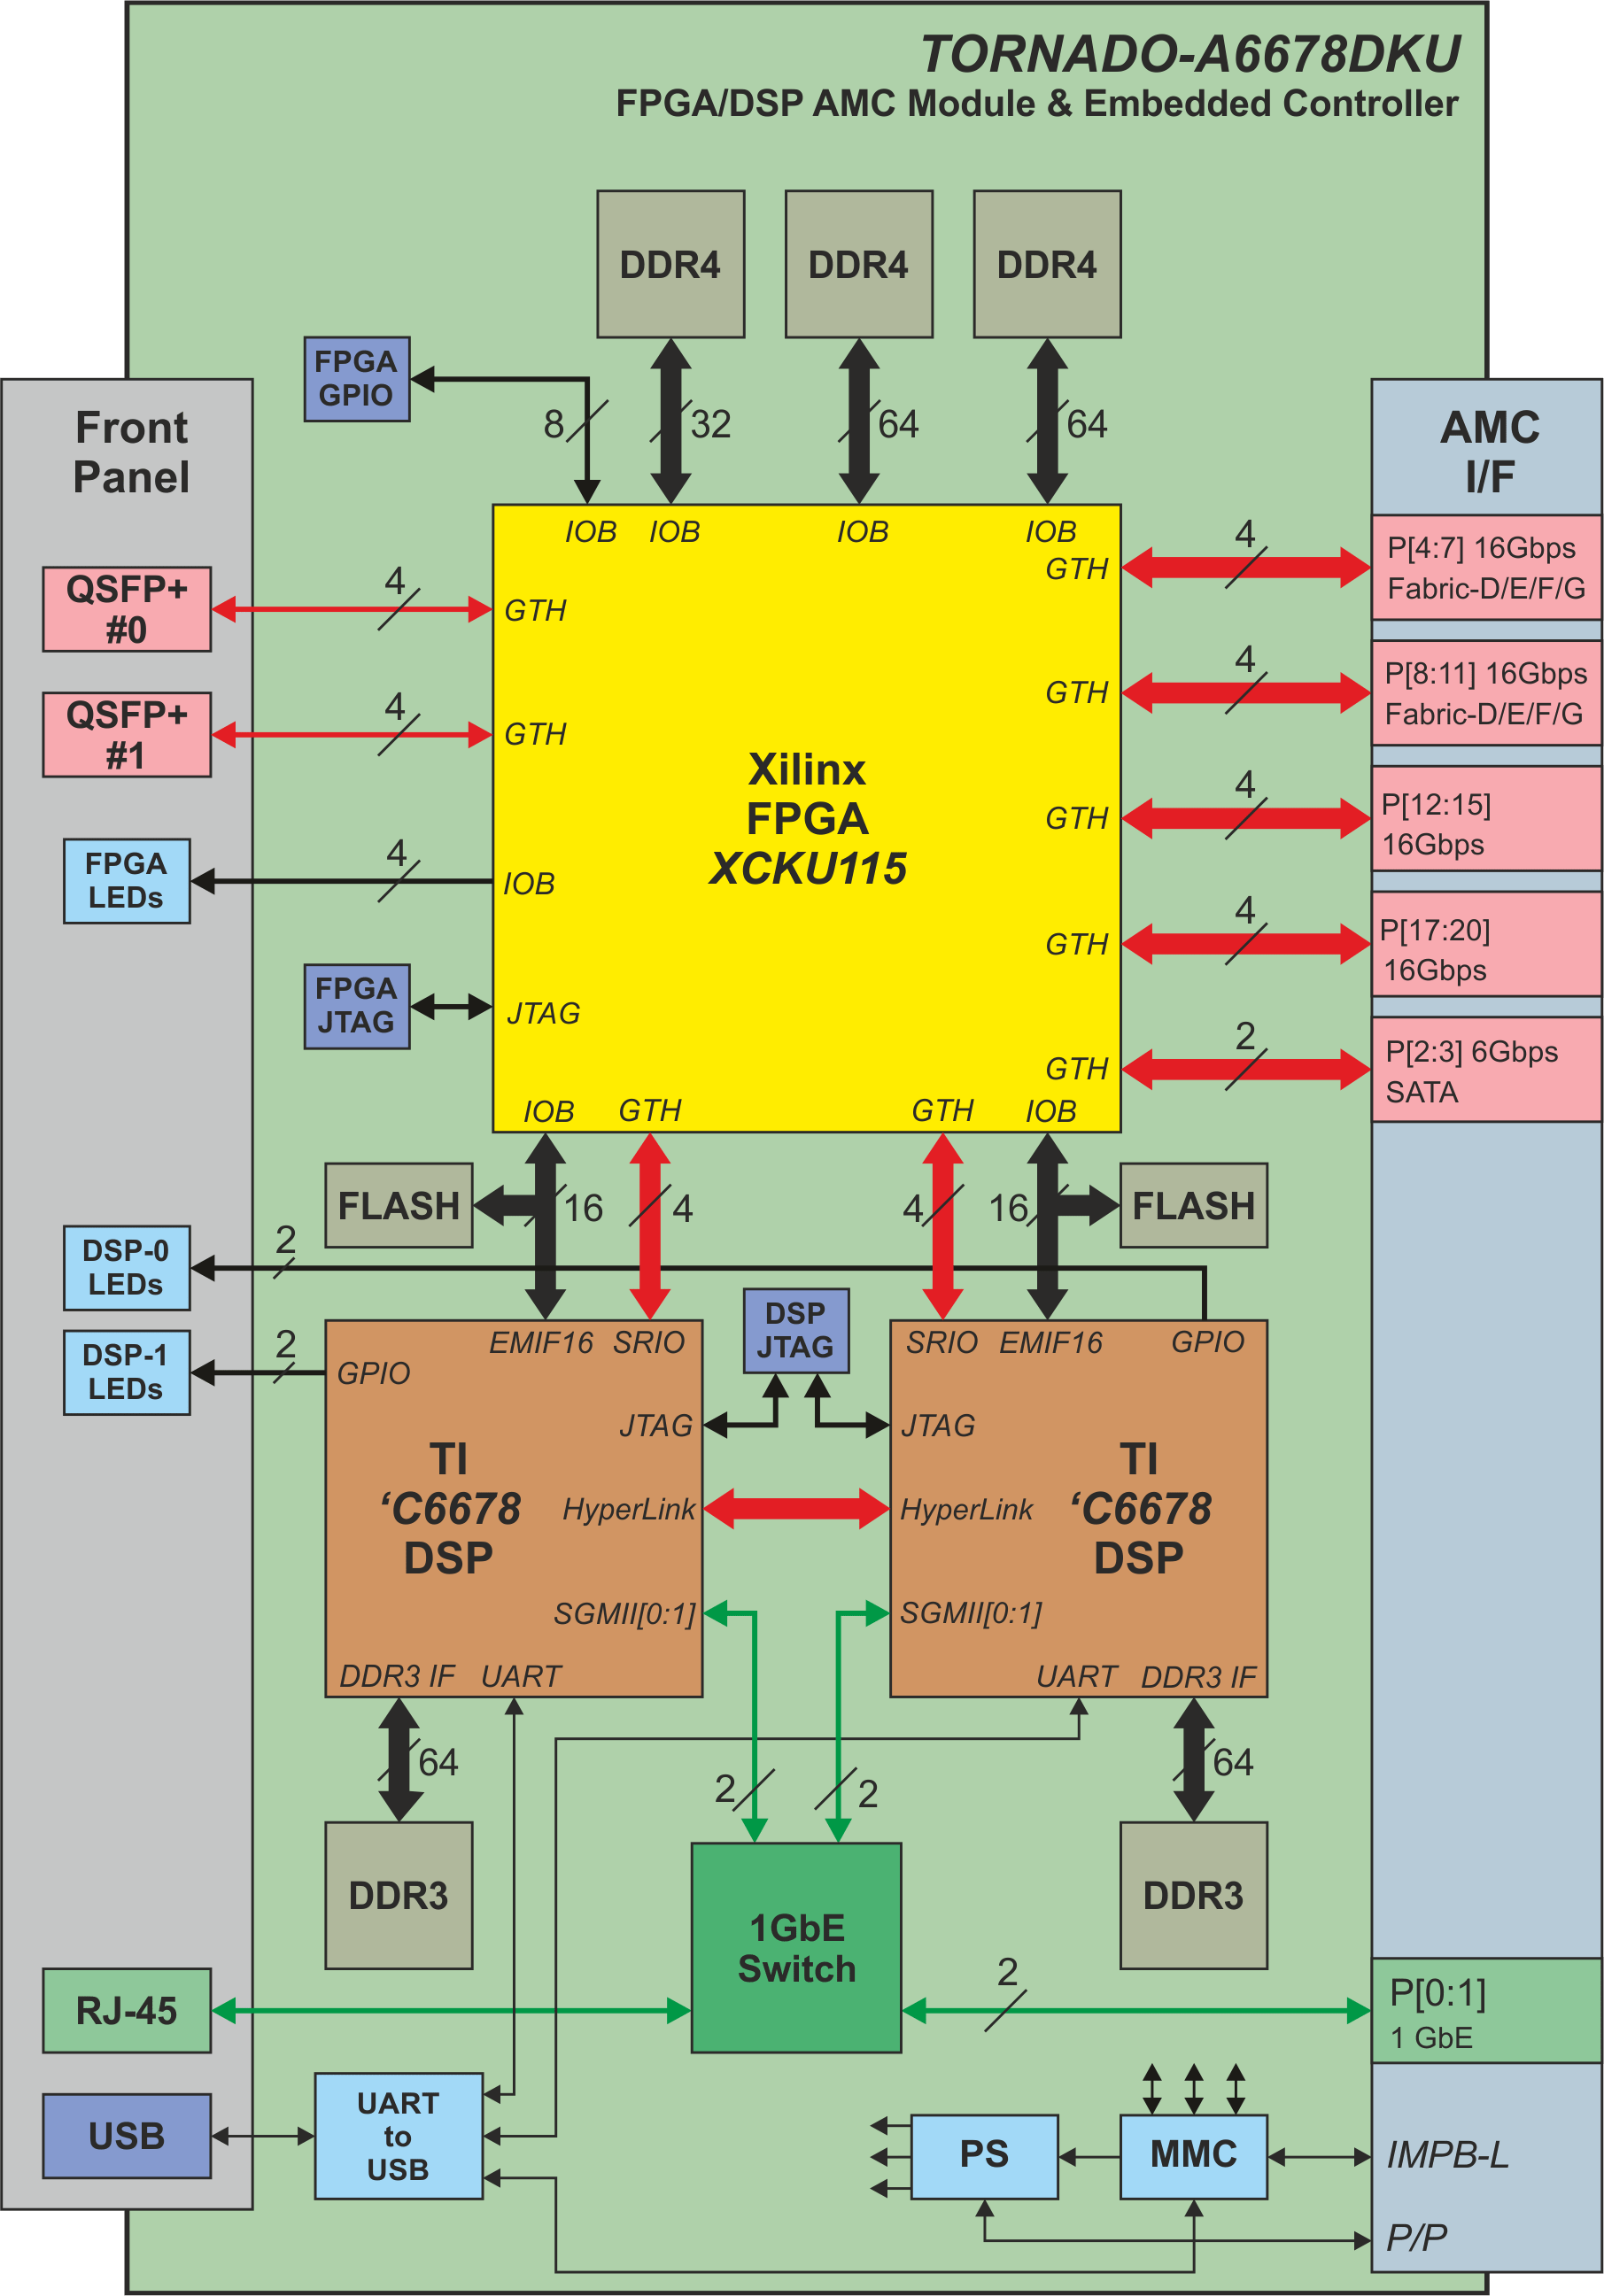 hight resolution of block diagram of tornado a6678dkuxxx amc module with two tms320c6678 dsps and kintex ultrascale